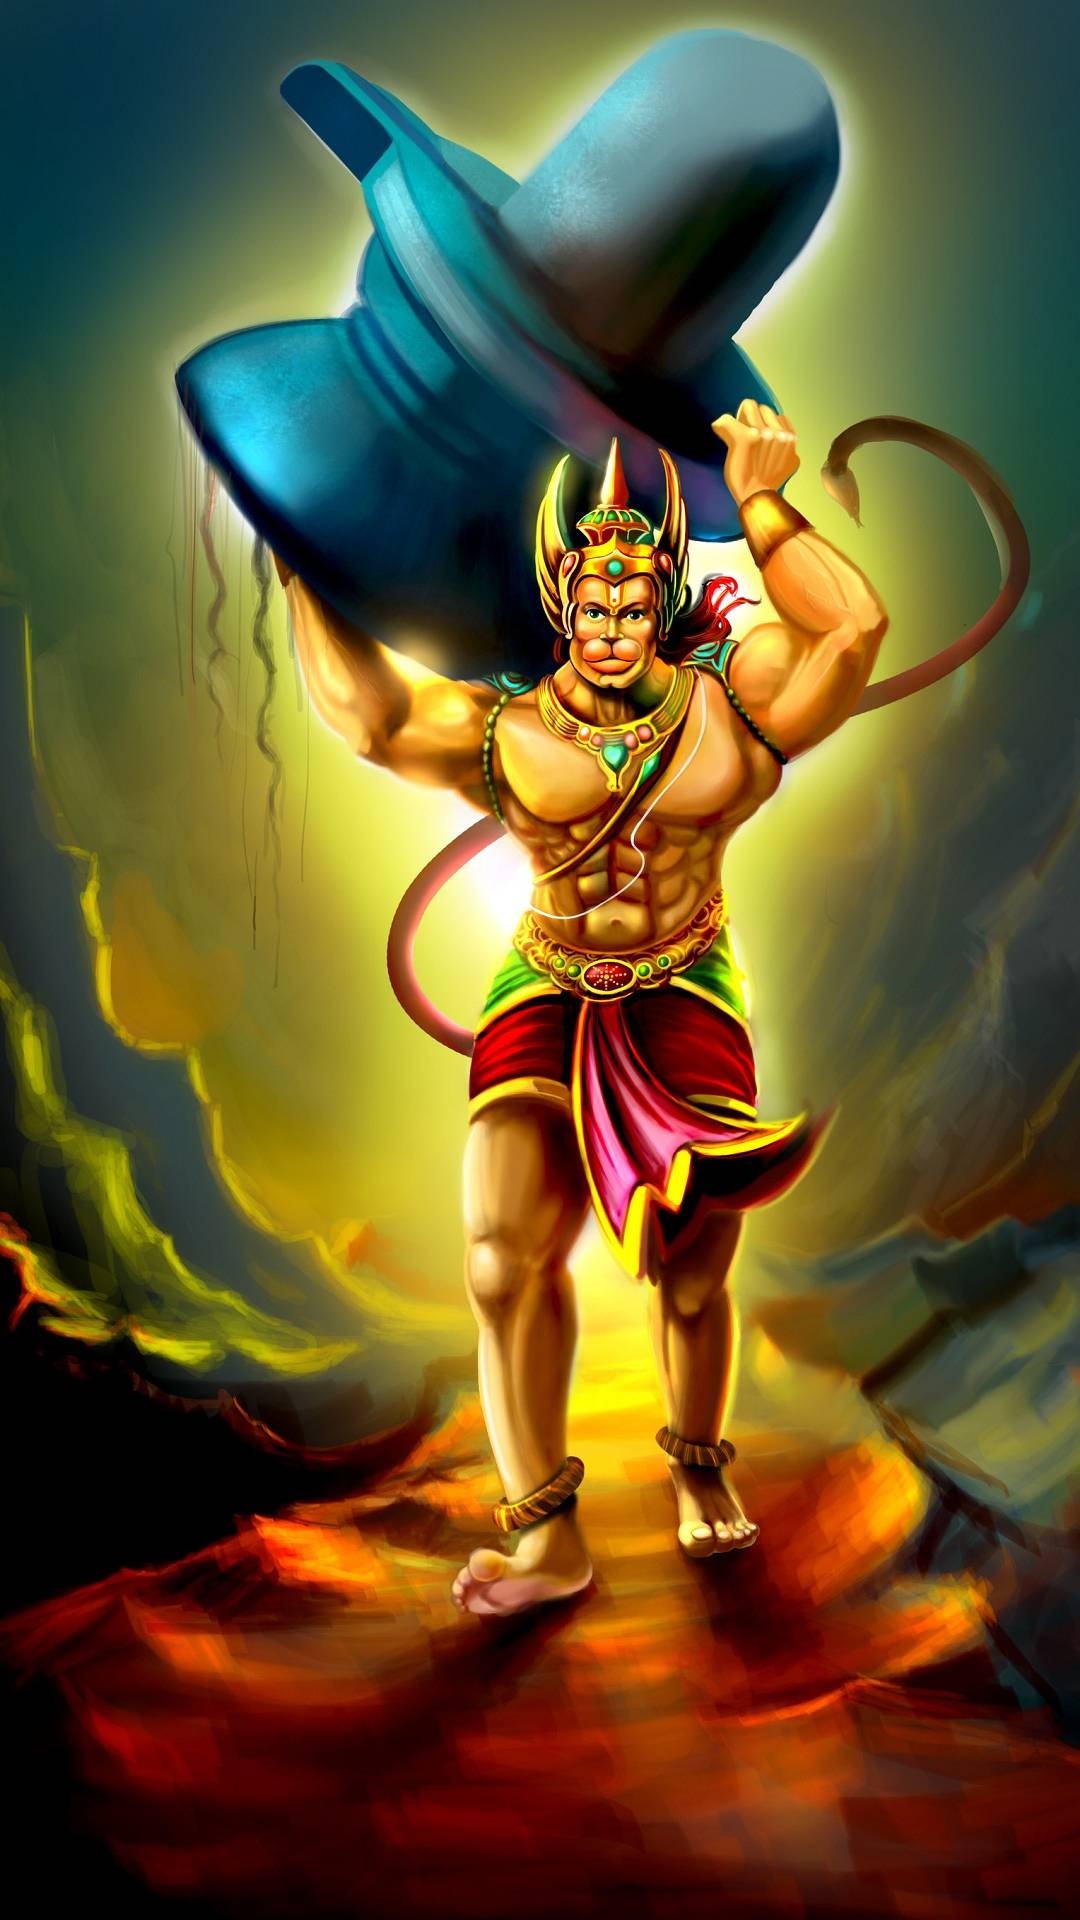 Hanuman Animated Wallpaper Lord Hanuman Iphone Wallpaper Iphone Wallpapers